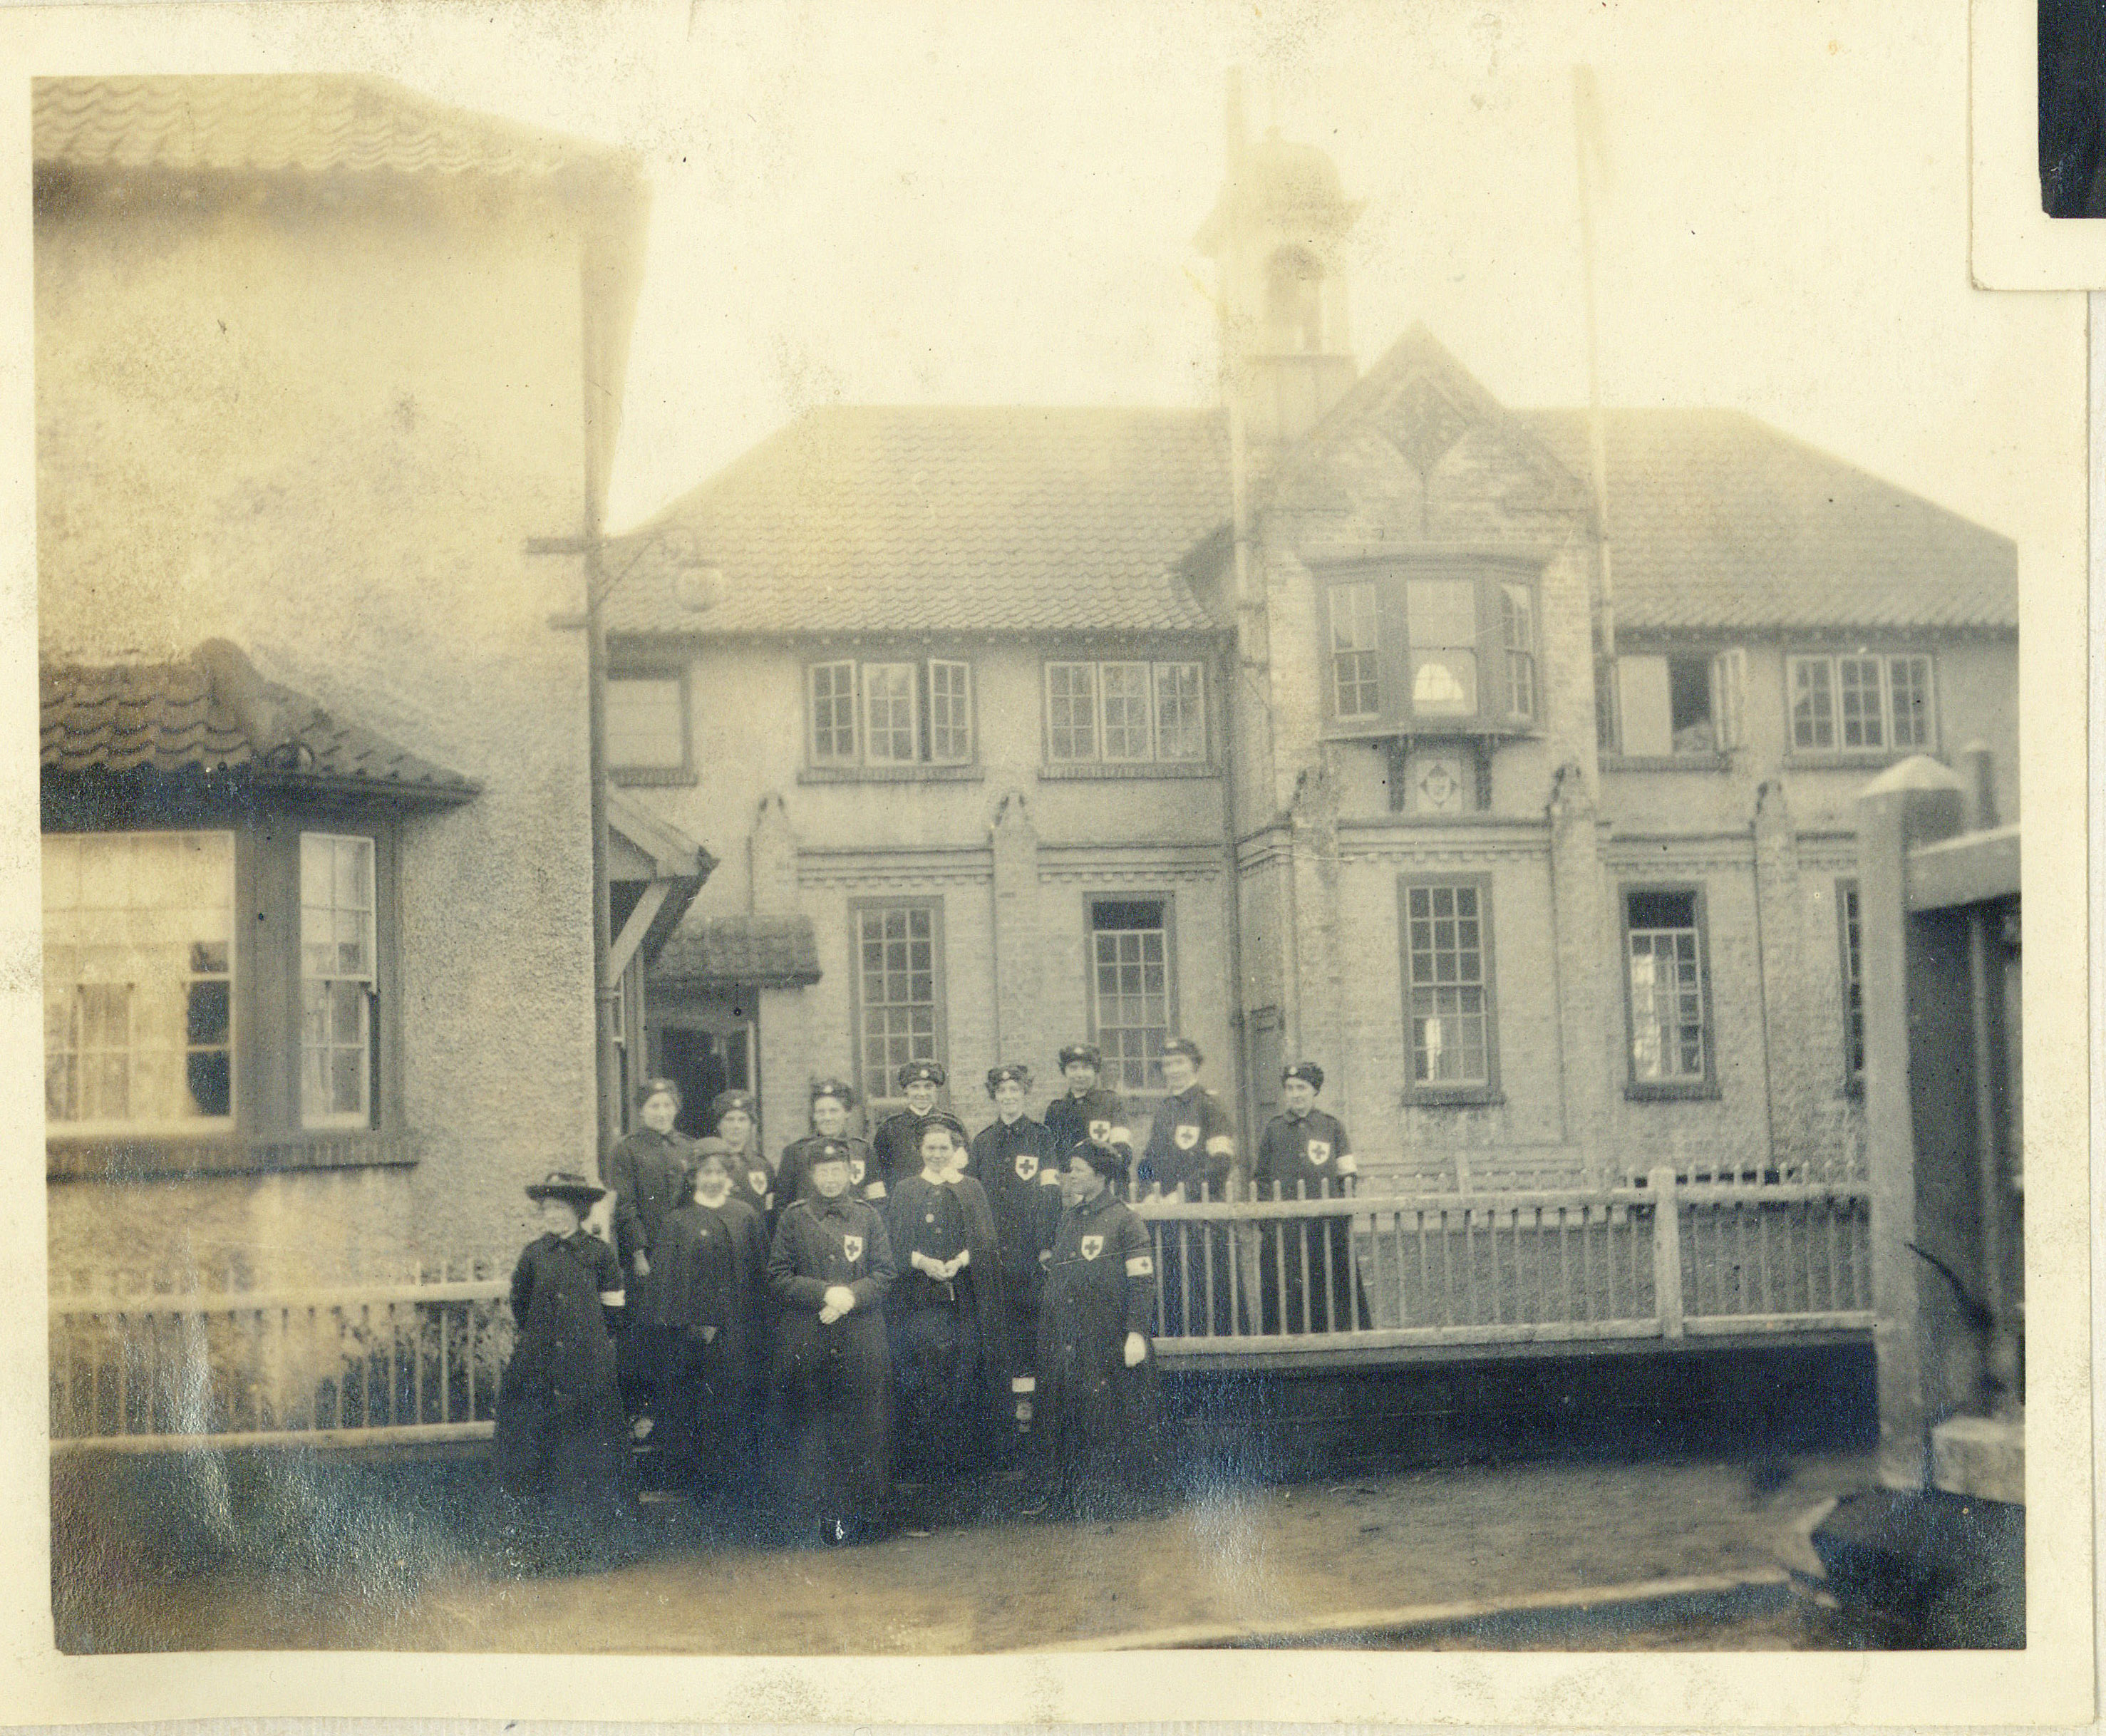 Photograph of nurses outside the auxiliary Hospital at Rounton Grange, New Years Eve, 1916 (Charles Philips Trevelyan Archive, CPT/PA/6)